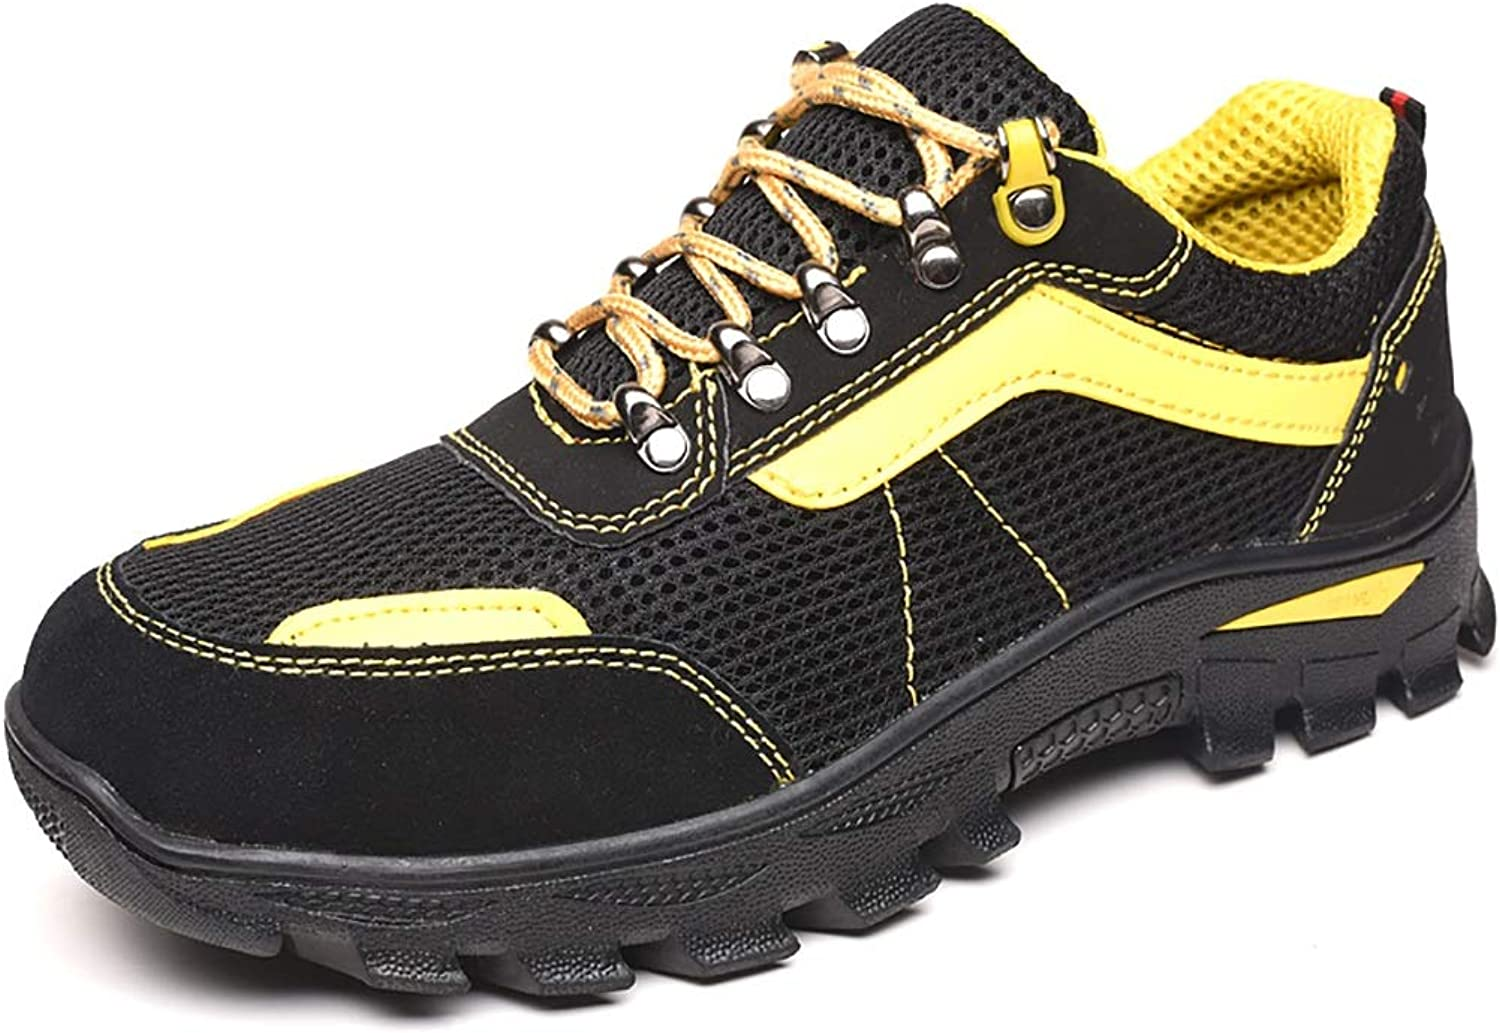 Gym wear for men Men's suede leather hiking shoes waterproof non-slip low waist thin section non-slip casual shoes outdoor path walking shoes on cloud running shoes (color   Yellow, Size   44)